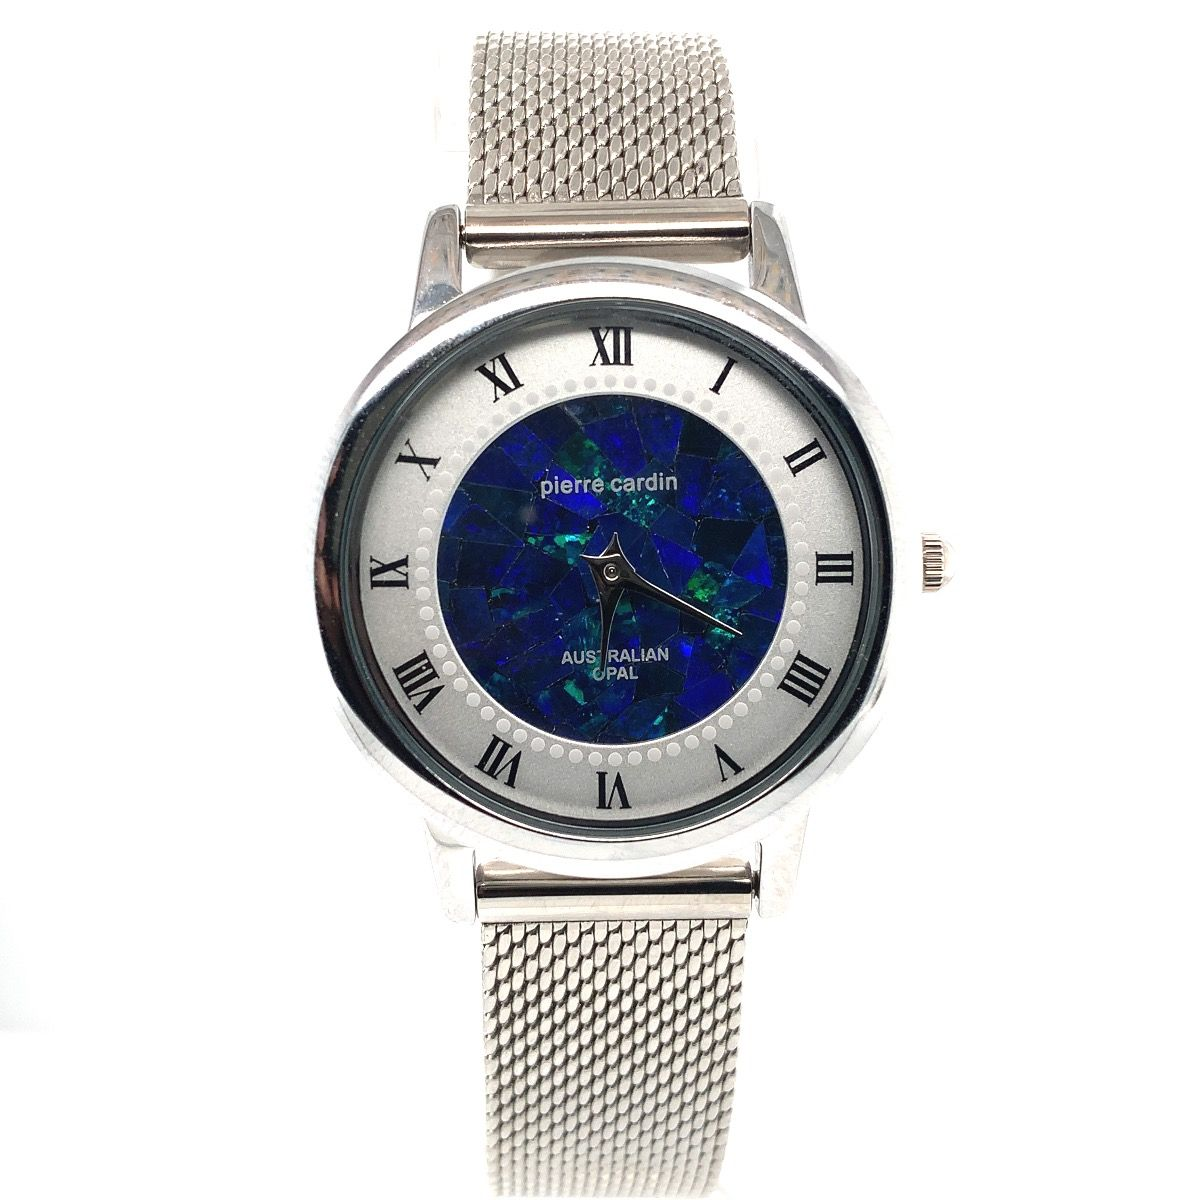 Pierre Cardin ladies opal face watch with mesh band